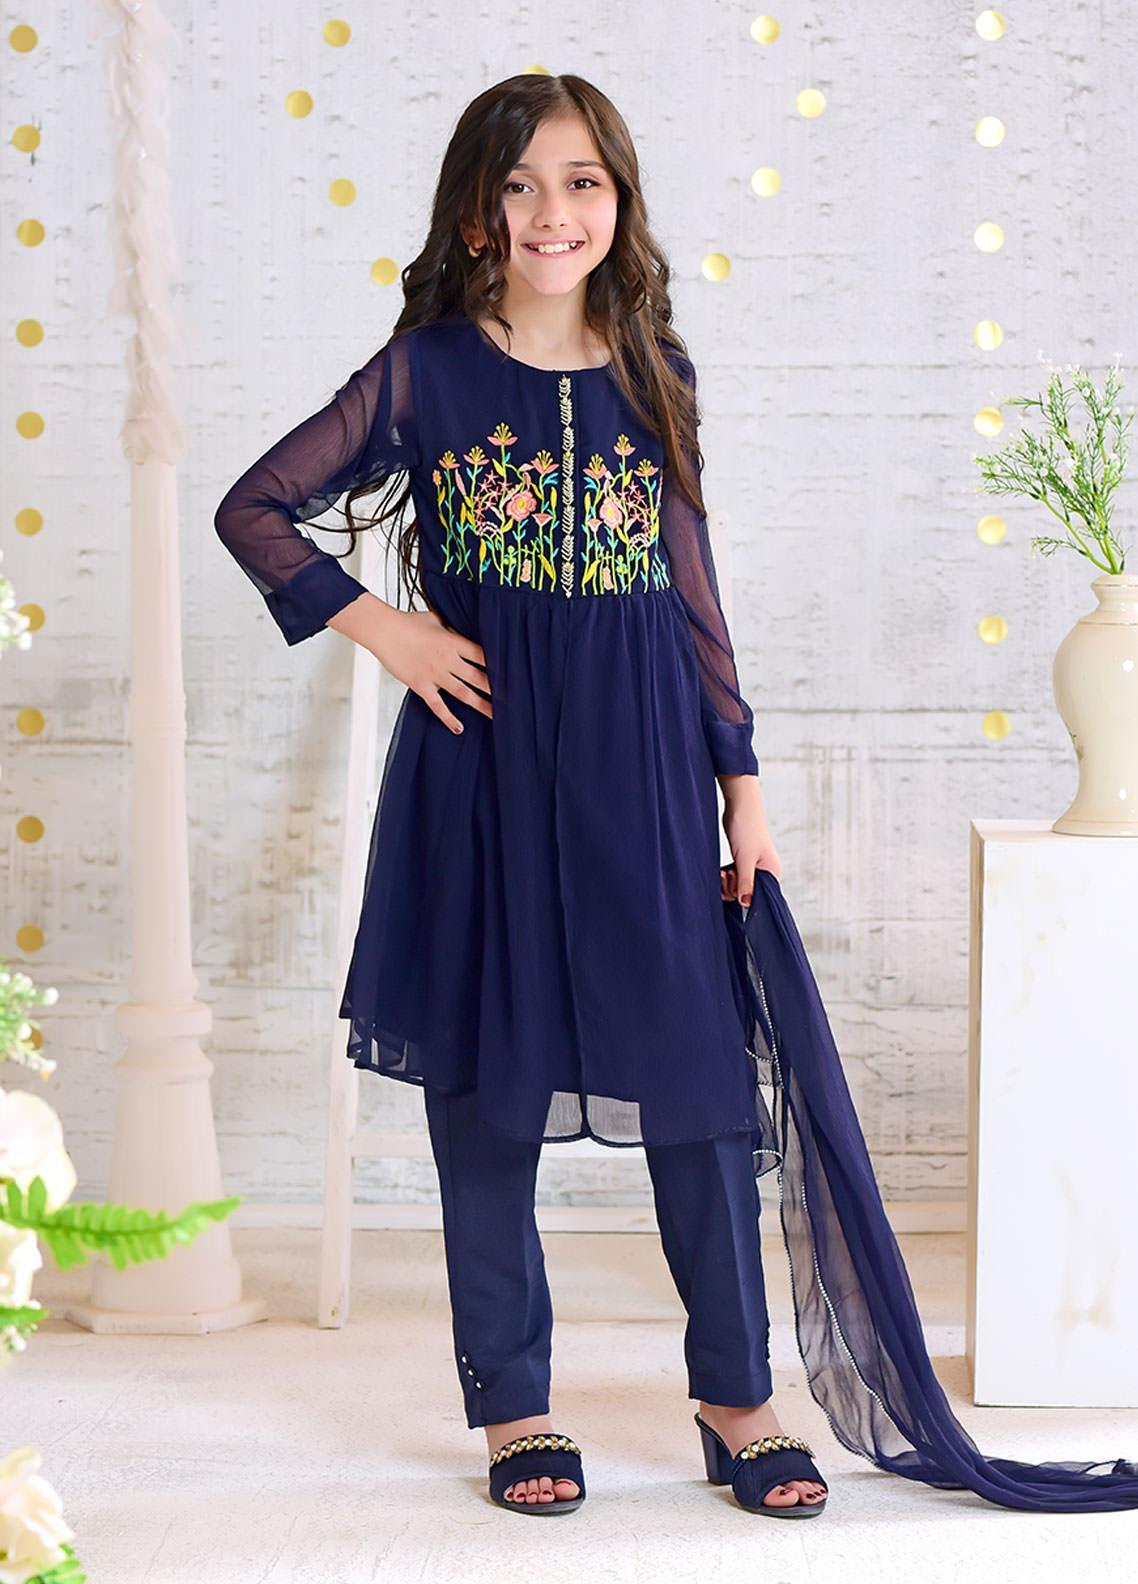 Ochre Chiffon Casual 3 Piece Suit for Girls -  OFW 262 Navy Blue